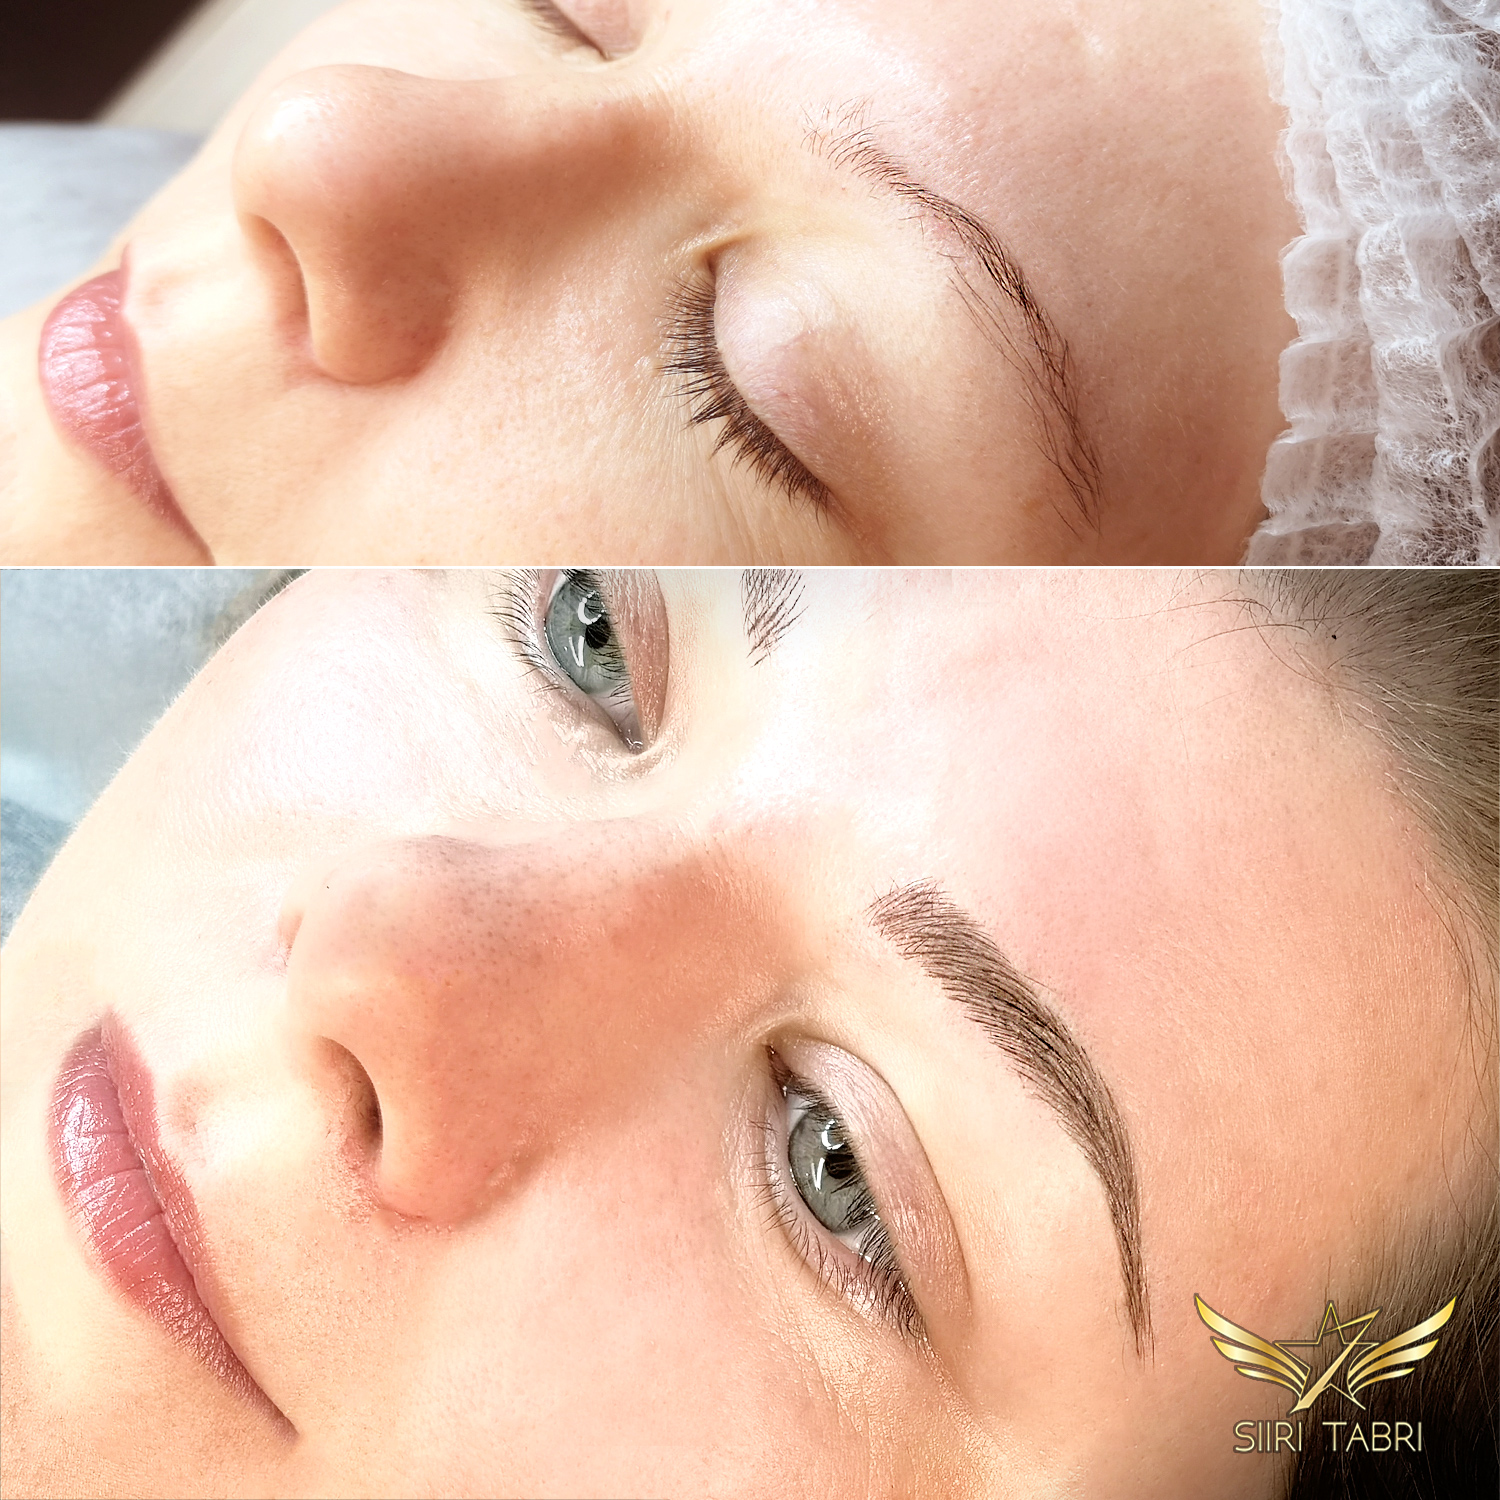 Light microblading. Another pair of beautiful brows from a very weak starting situation with the help of Light microblading.